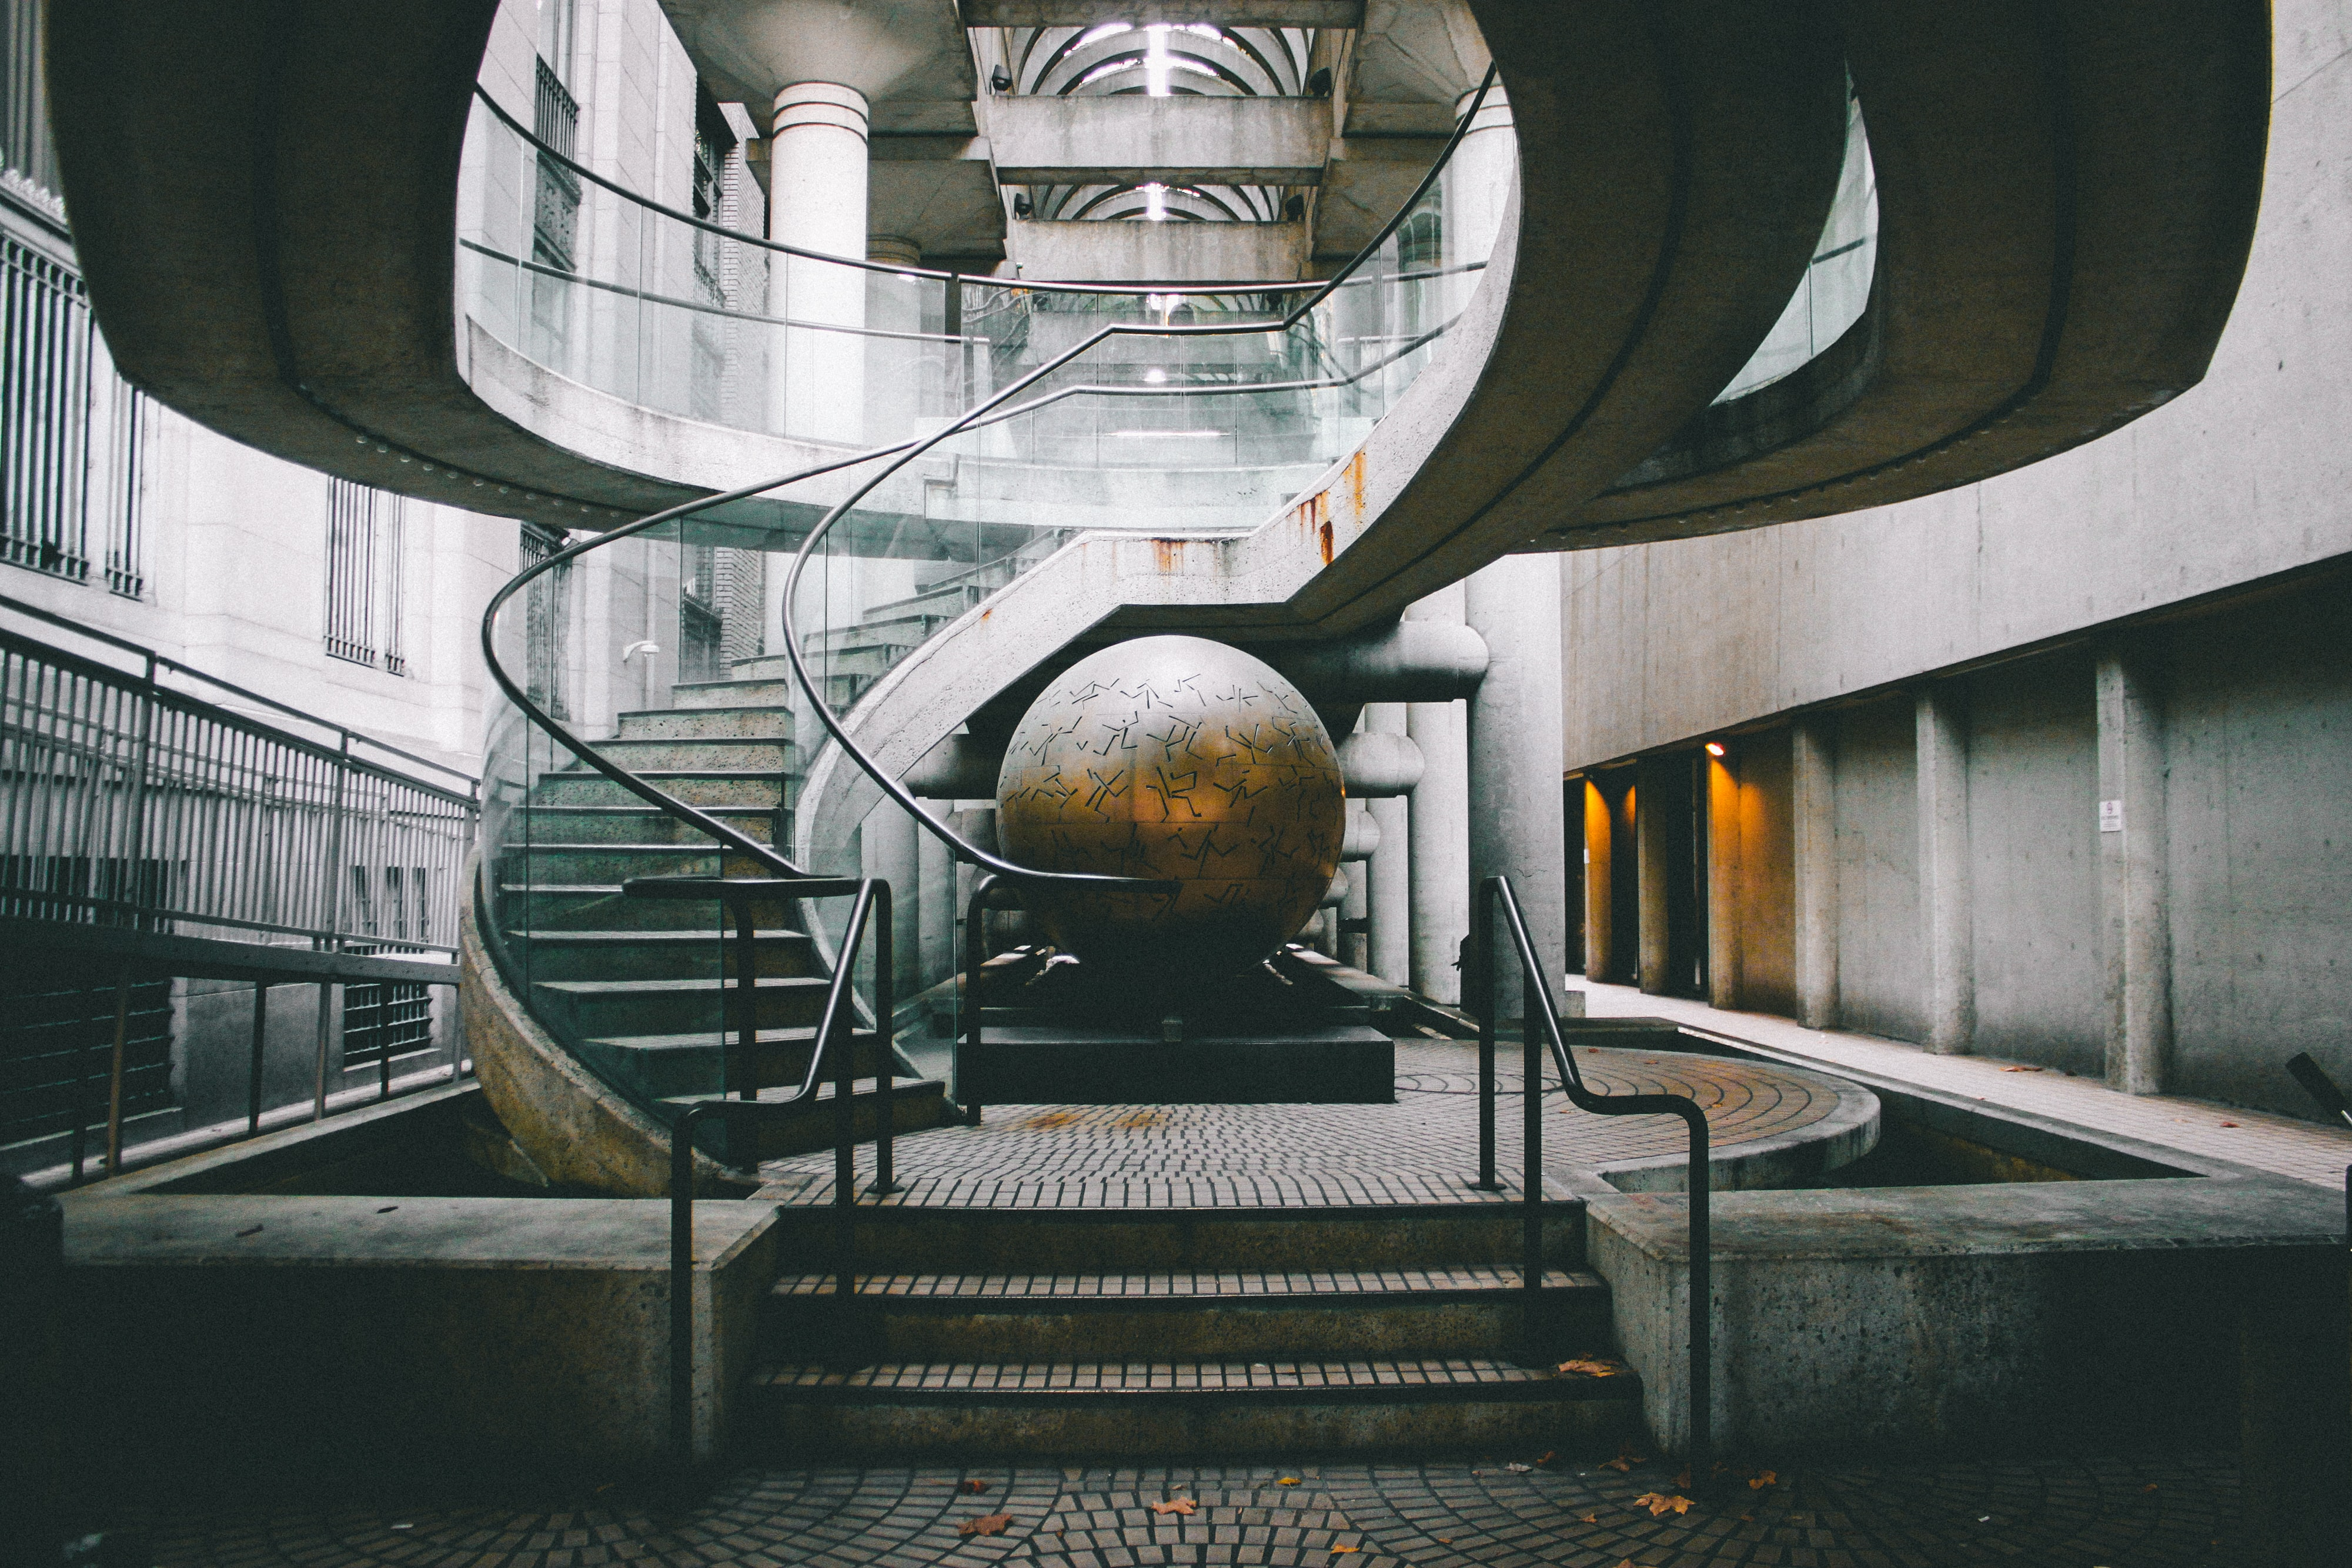 landscape photography of grey staircase with globe under